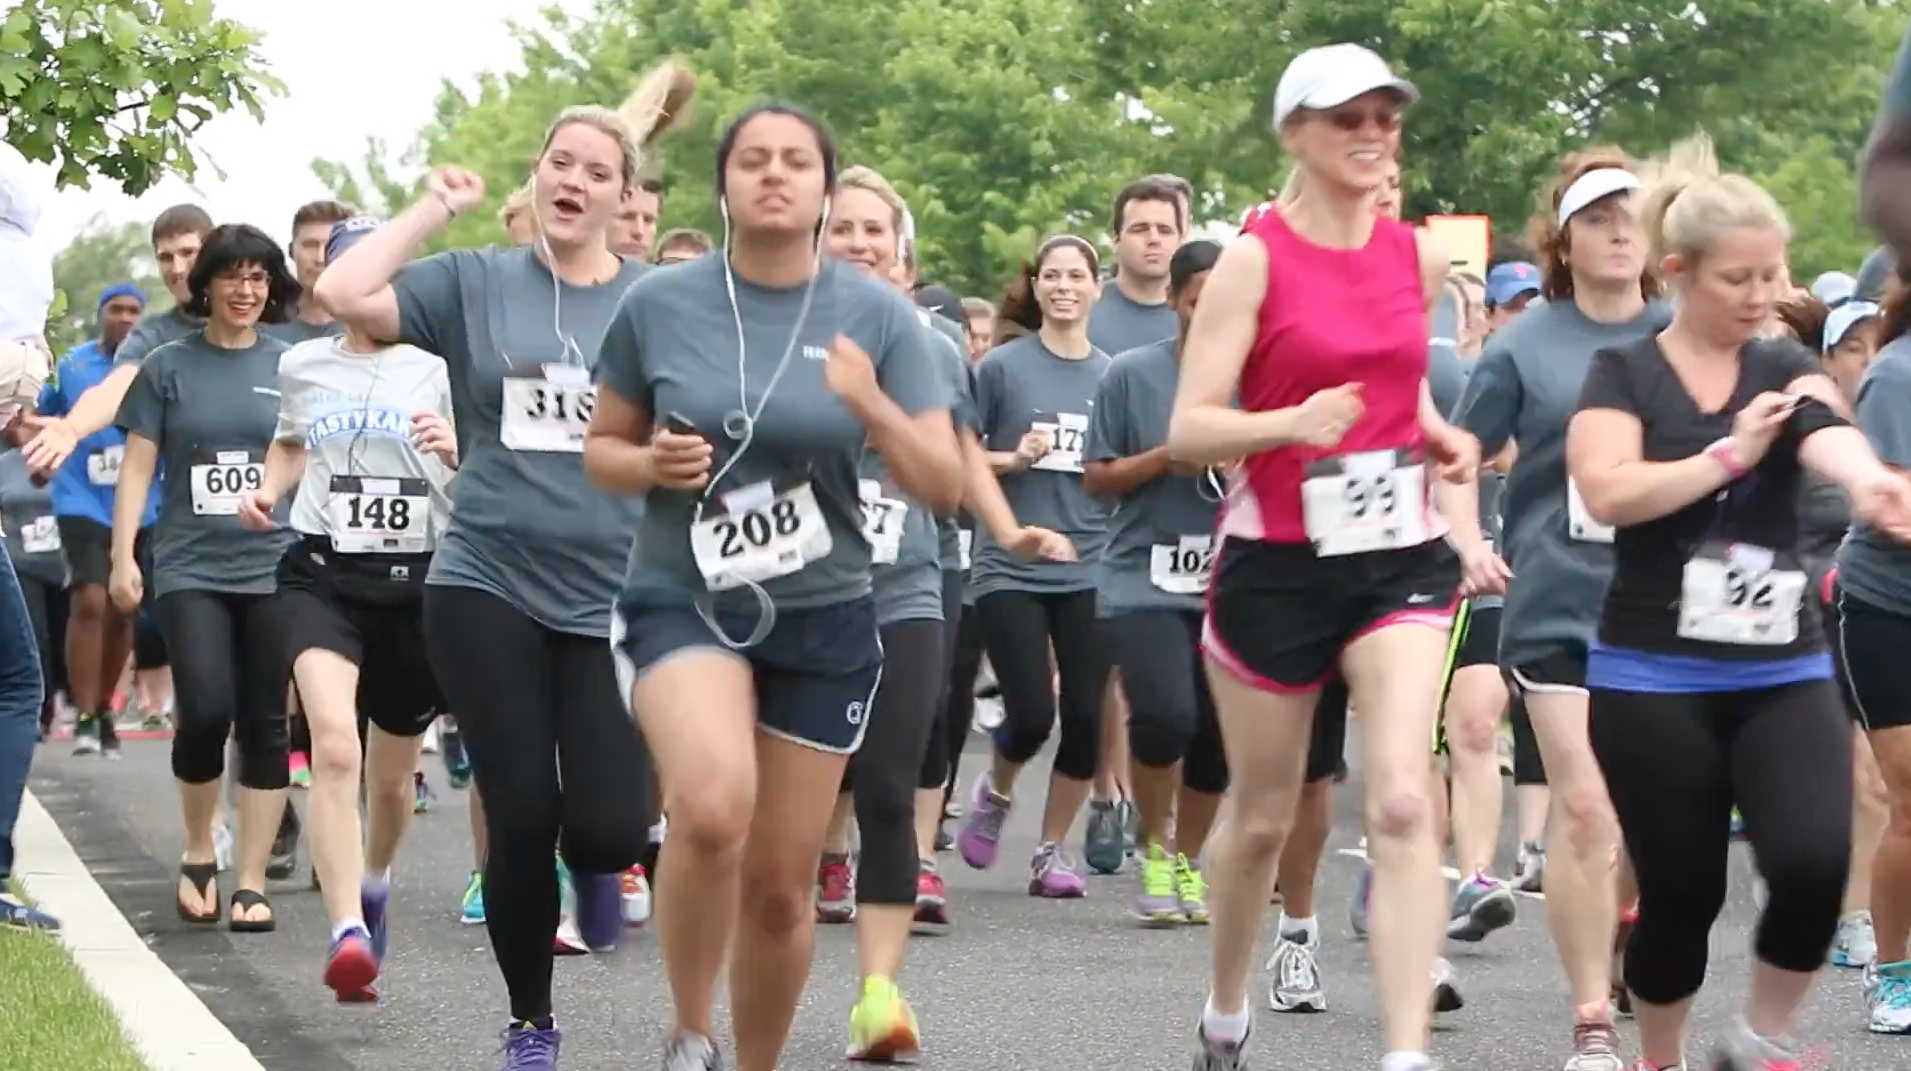 The Navy Yard 5K